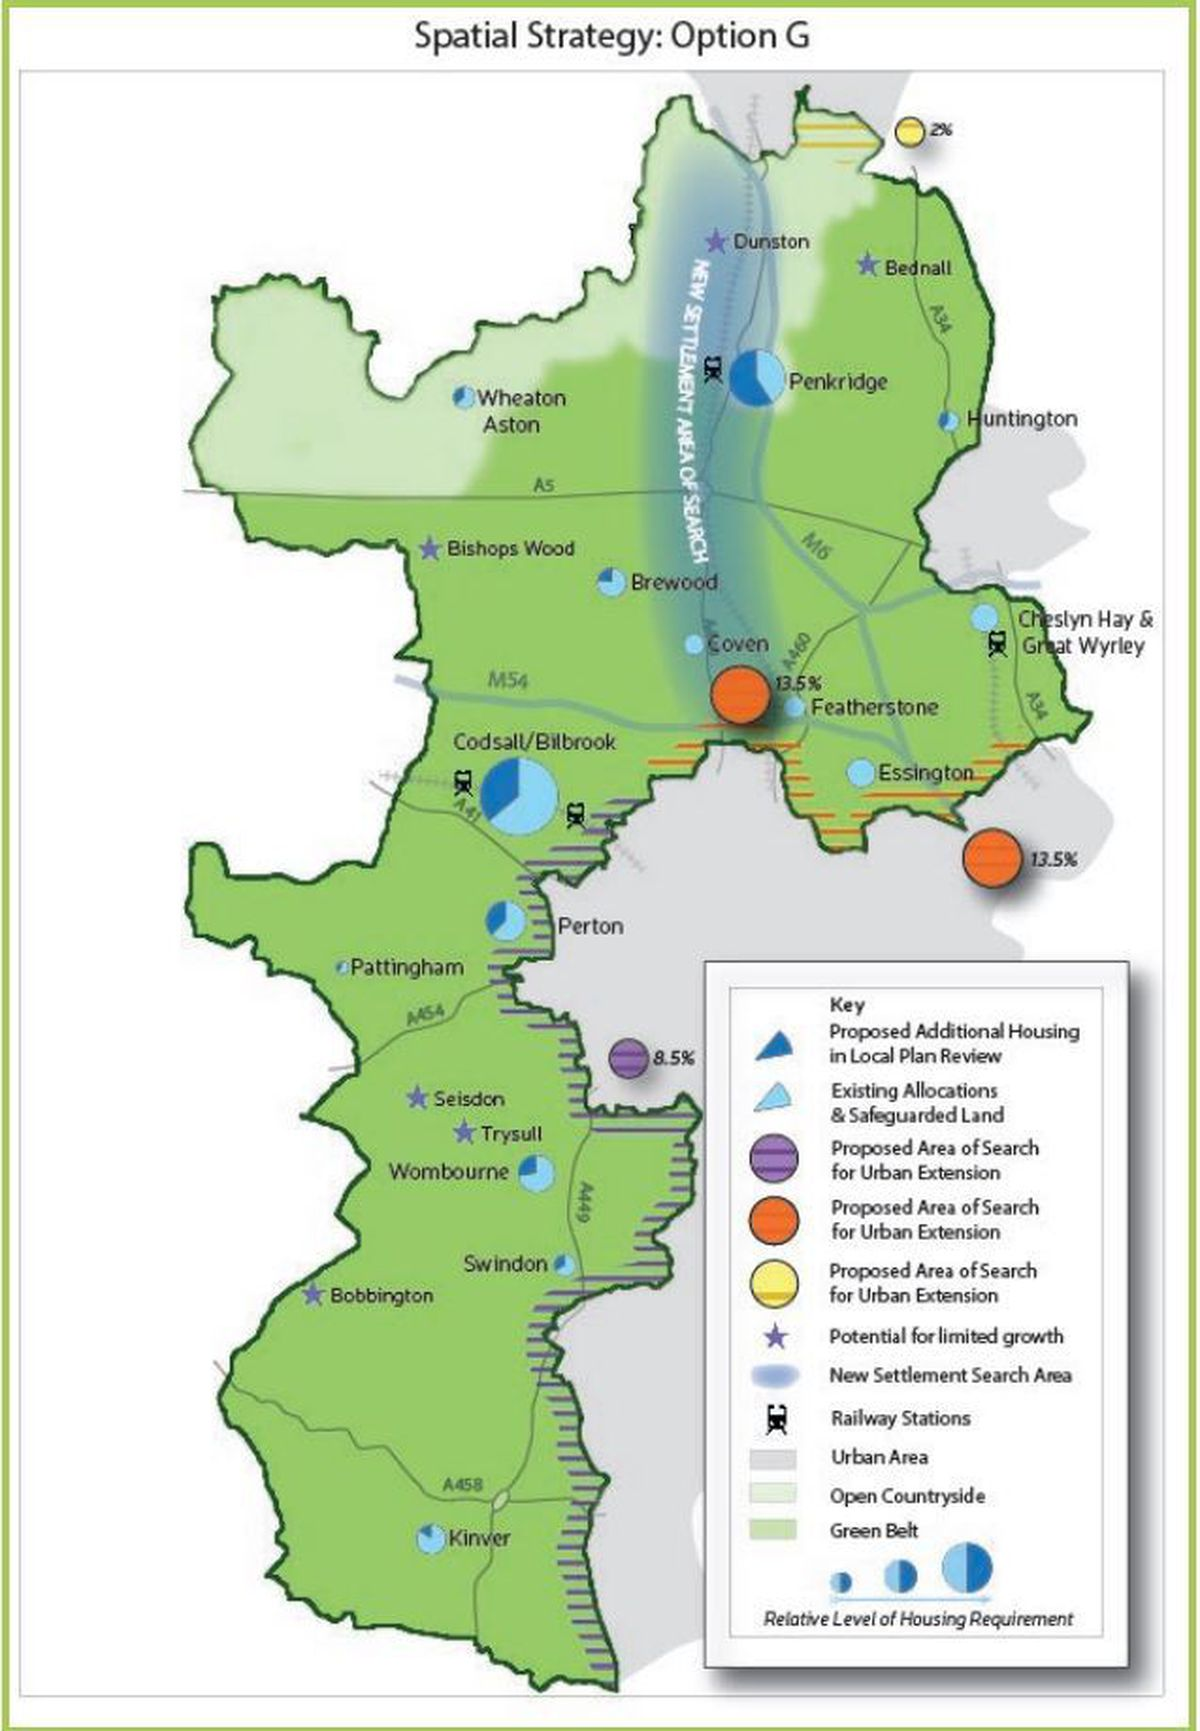 A South Staffordshire Council map showing its current preferred plan for development